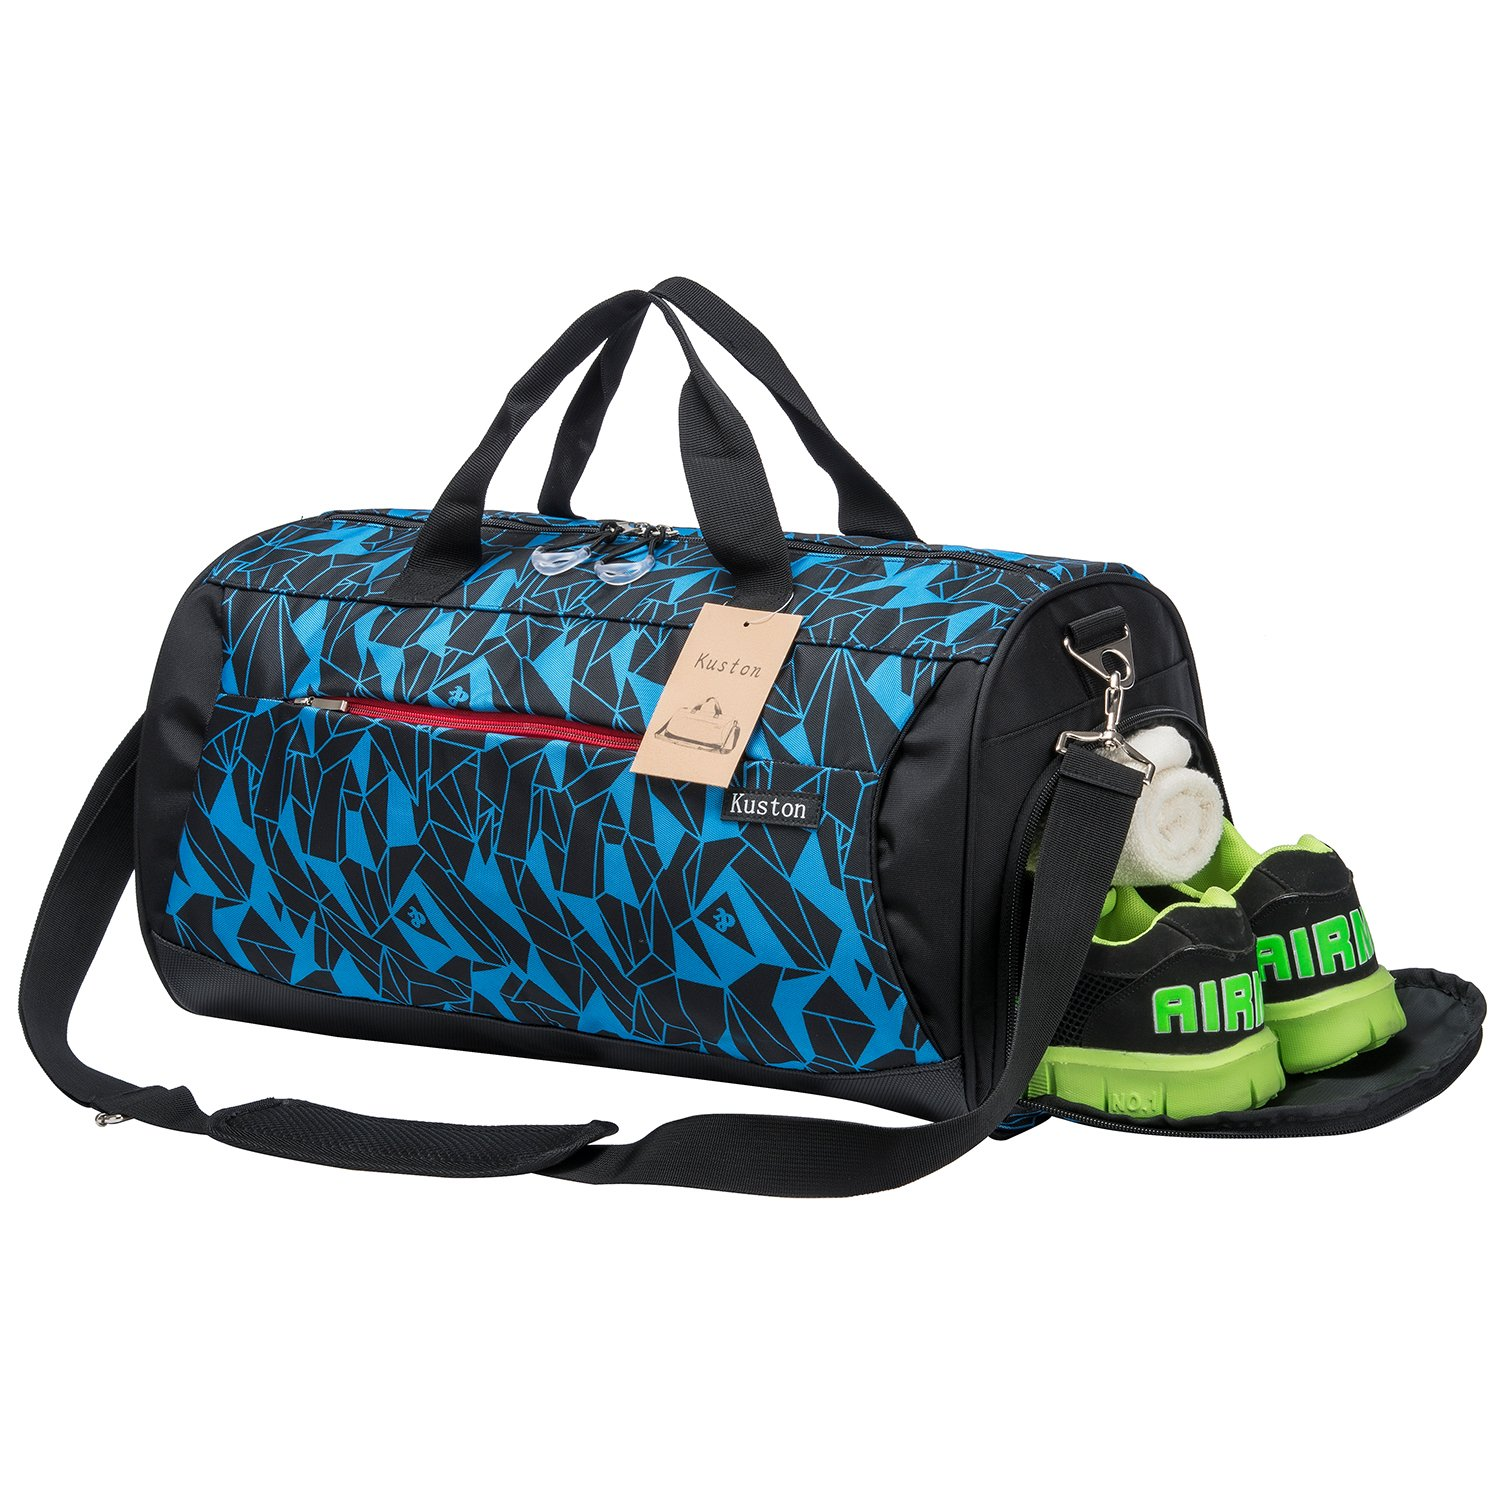 Kuston Sports Gym Bag with Shoes Compartment Travel Duffel Bag for Men and Women by Kuston